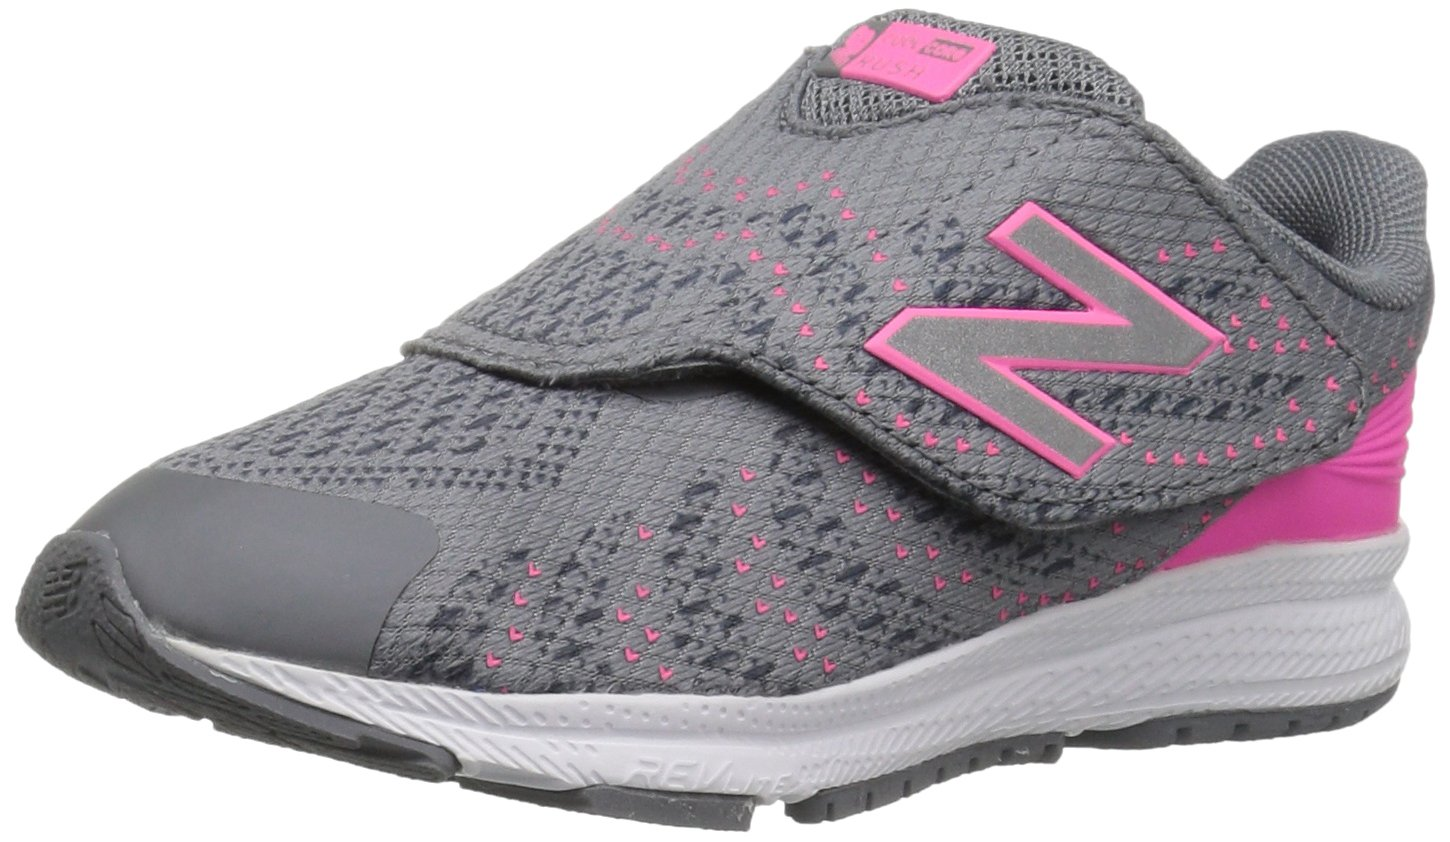 New Balance Girls' Rush v3 Hook and Loop Running Shoe, Grey/Pink, 2 M US Little Kid